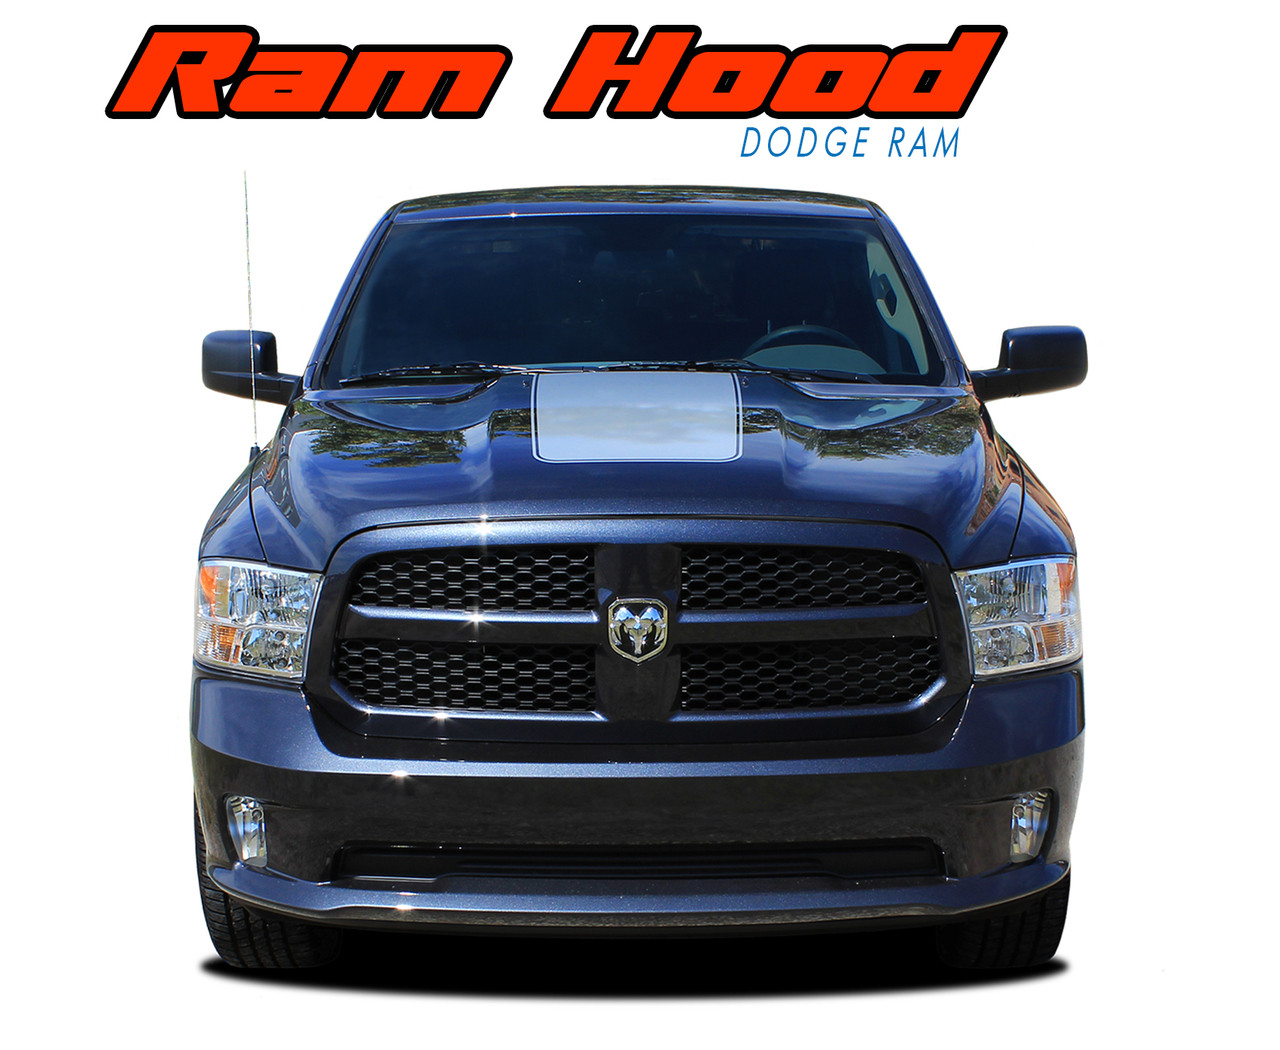 ram automobiles body bed motorcycles car decals styling hemi on item dodge for stickers in decal vinyl fender from